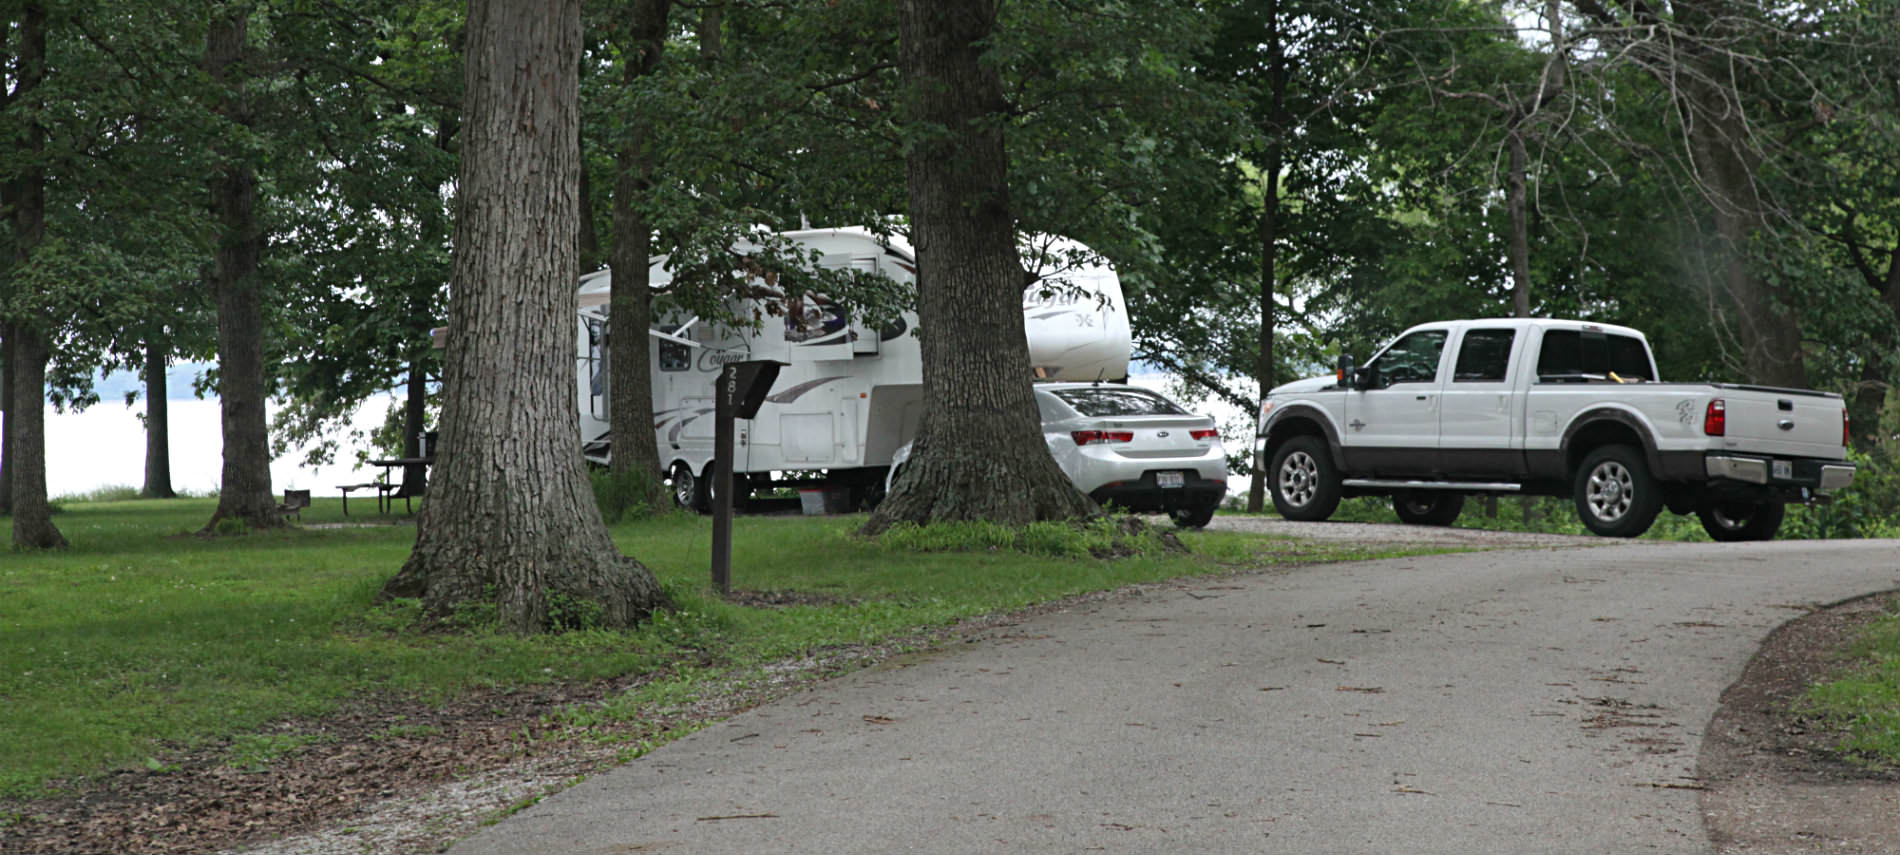 Fifth wheel white camper in woods with huge trees, white pickup and car parked in area, lake in distance.